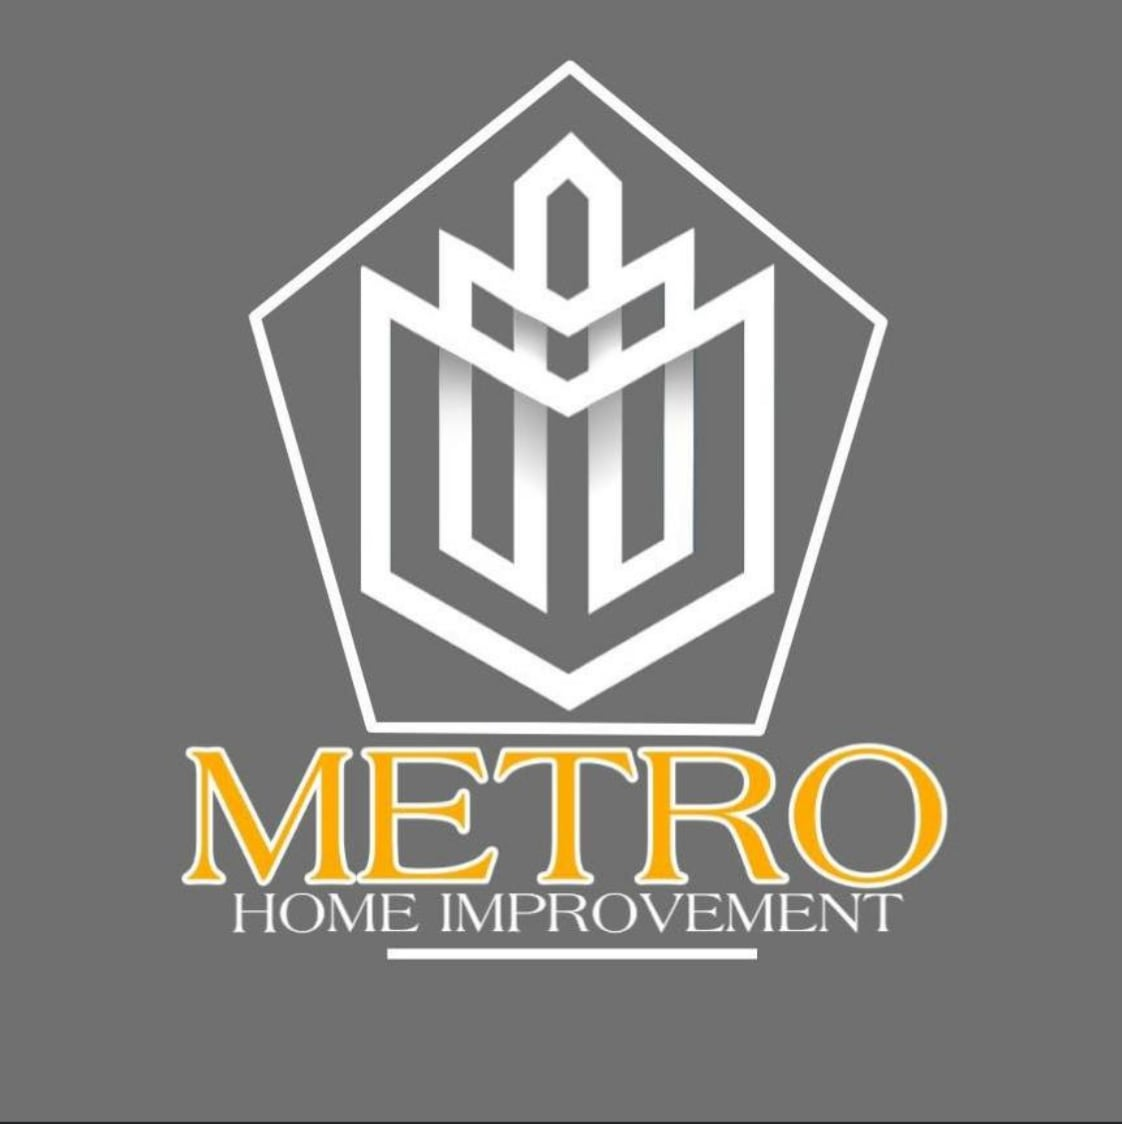 Metro Home Improvement LLC.